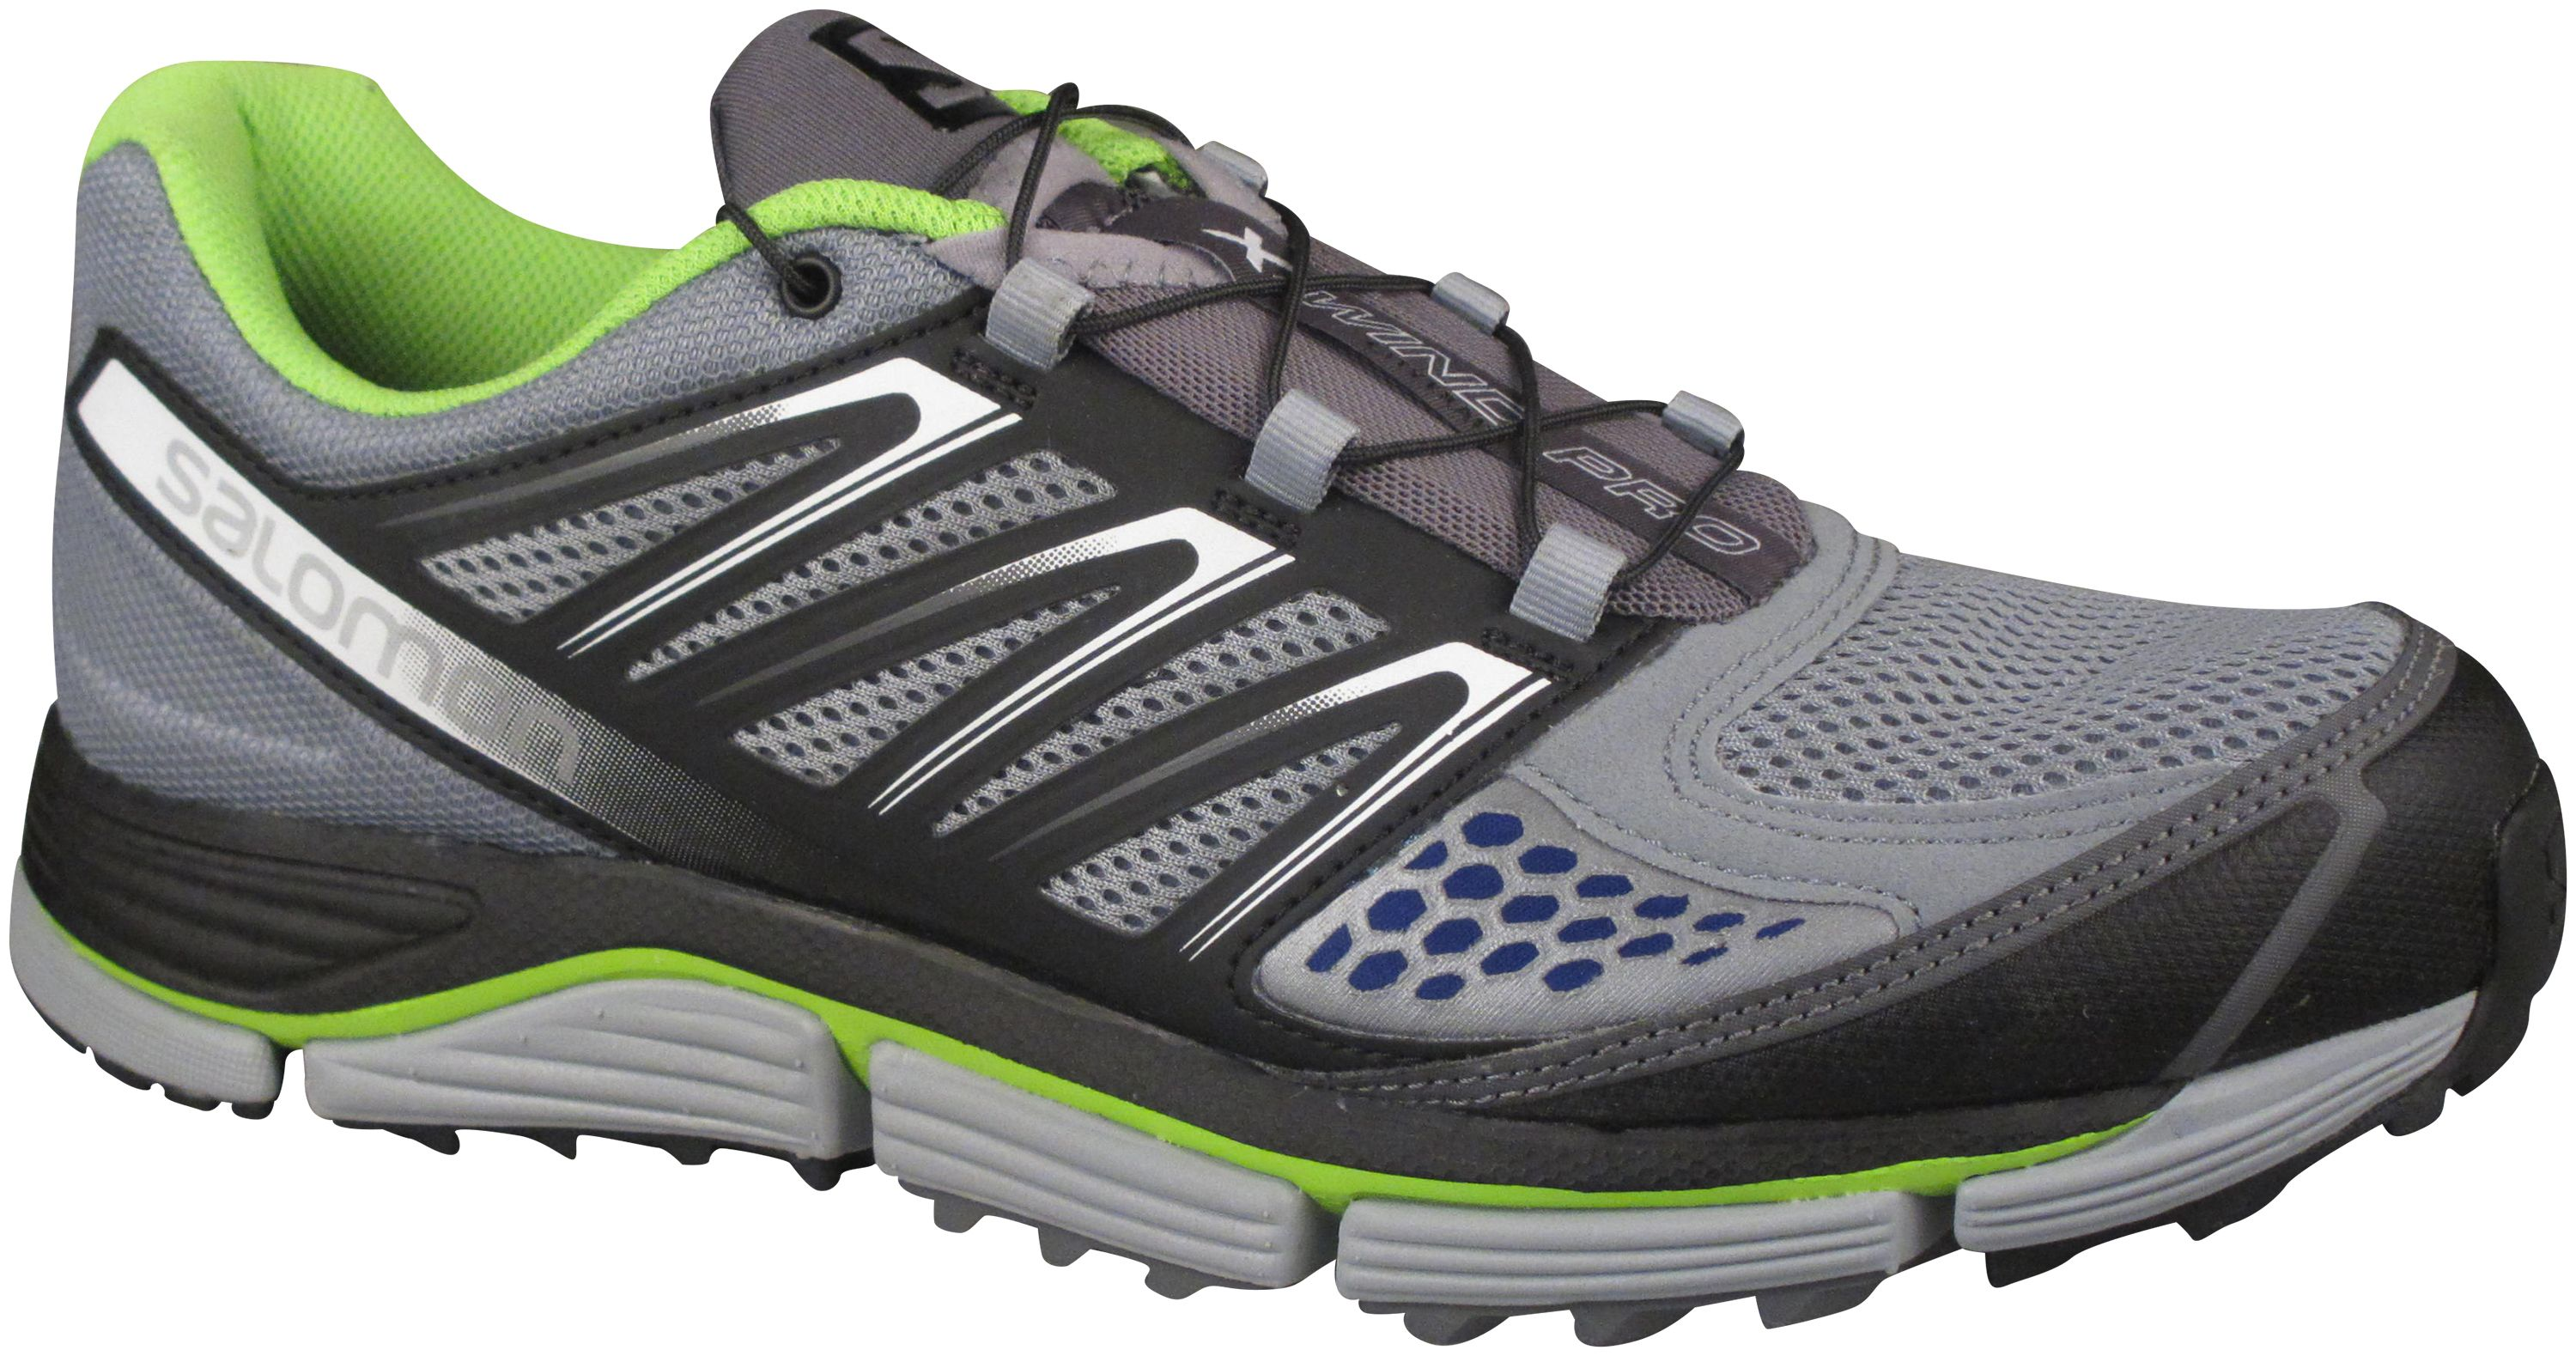 SALOMON XWind Pro in Pearl Grey/Black/Granny Green